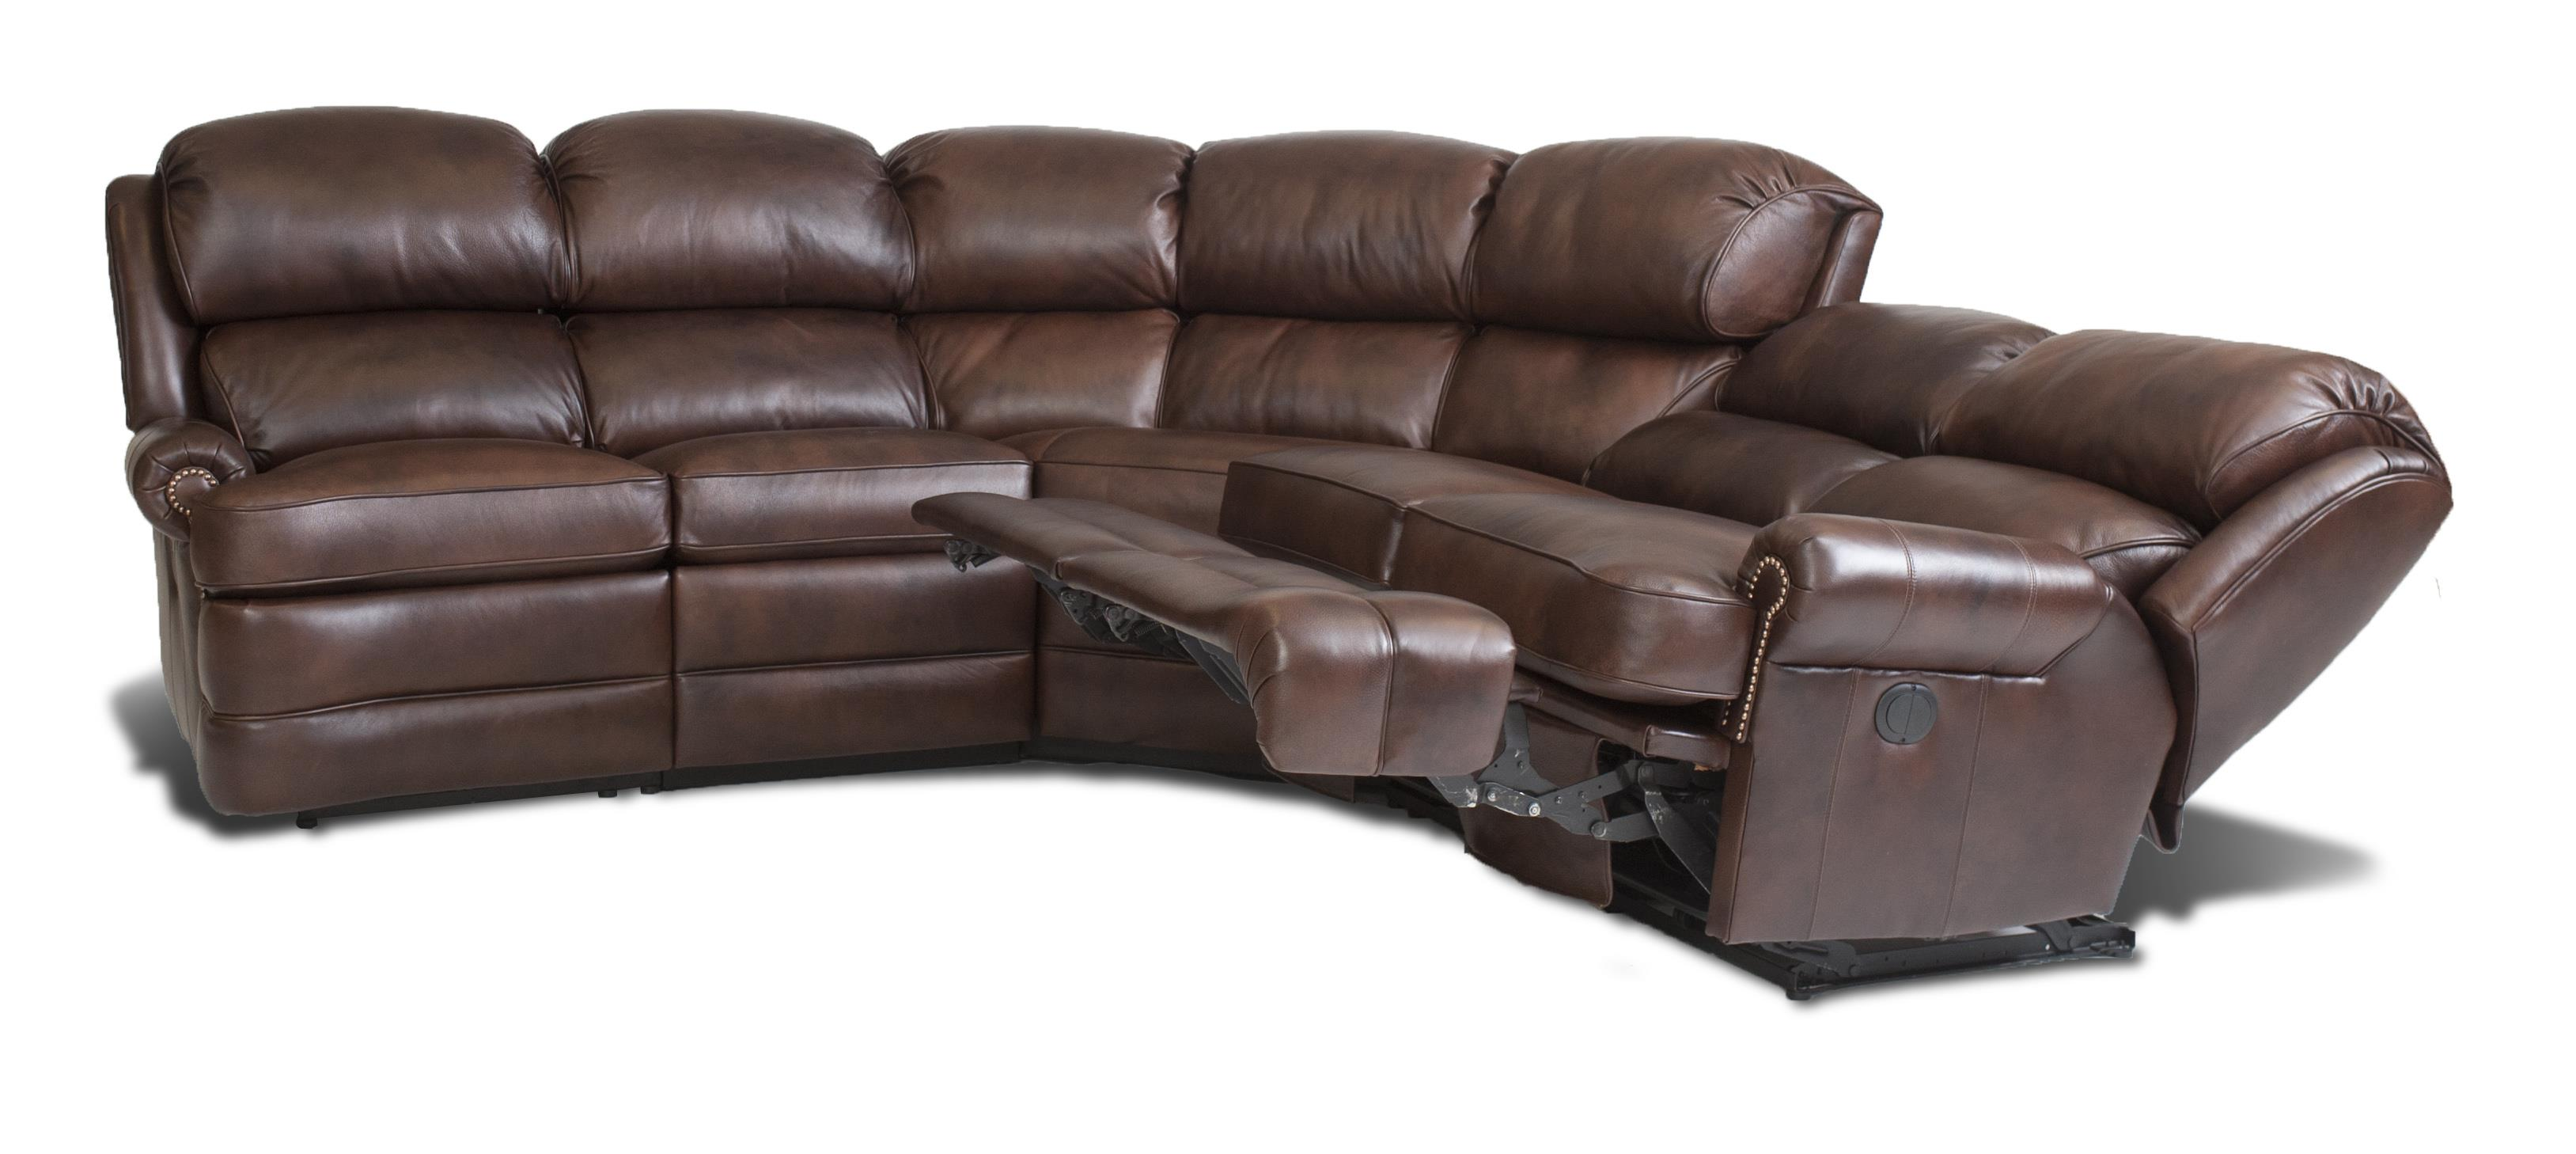 Transitional 5 Piece Reclining Sectional Sofa With Small Rolled Arms By Smith Brothers Wolf